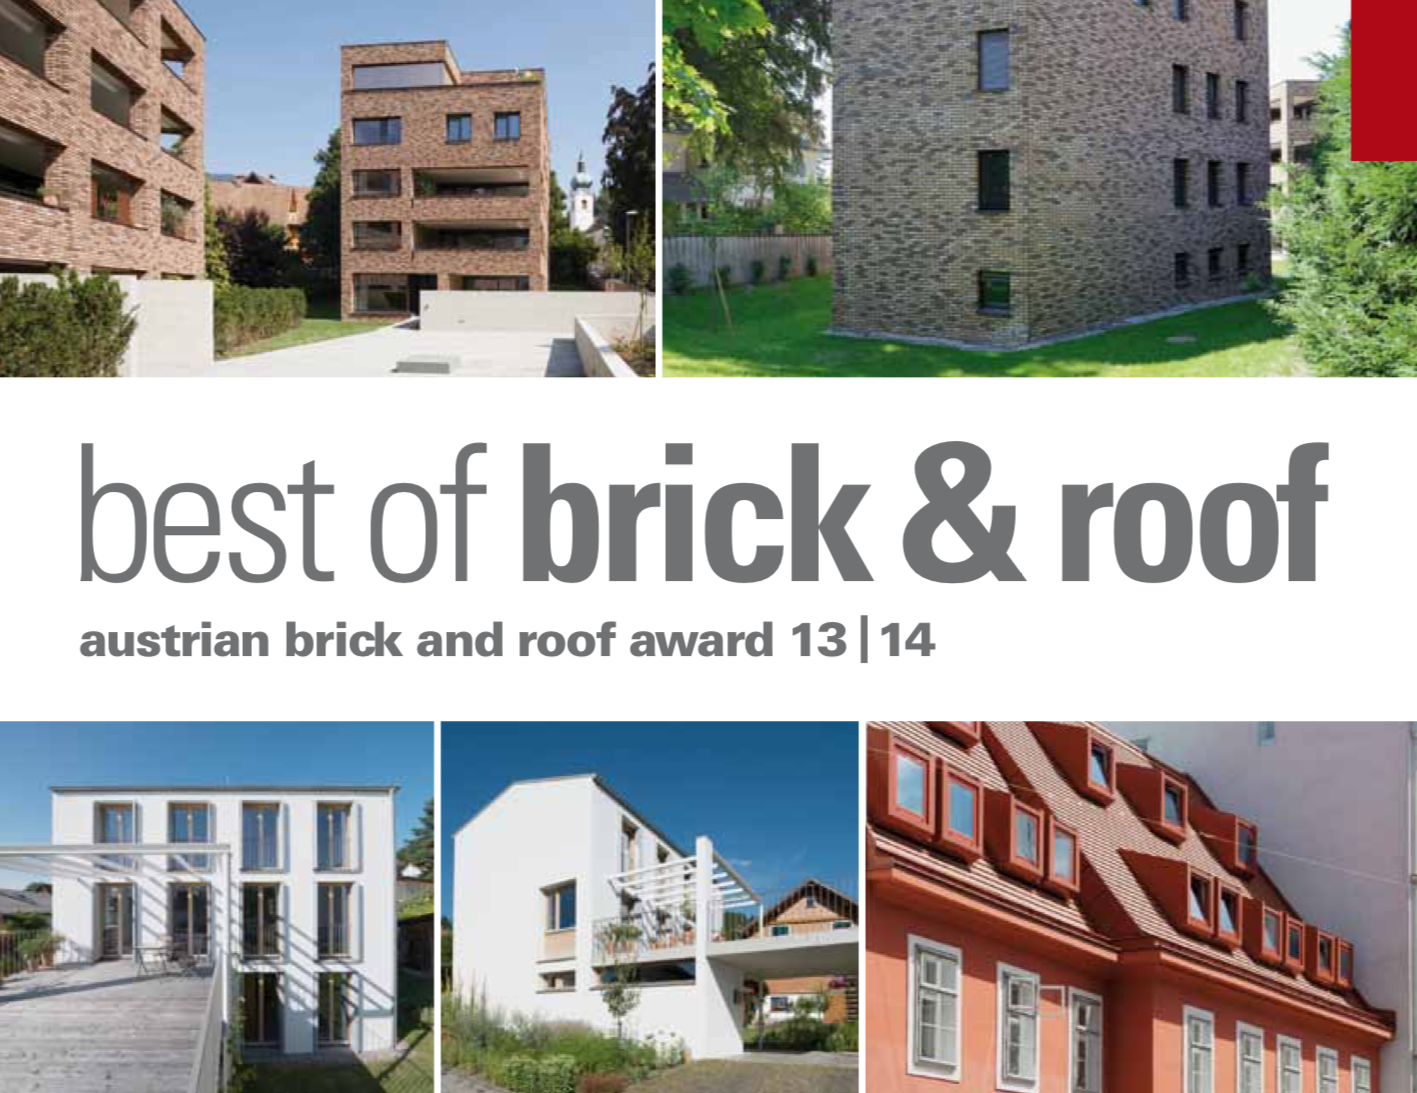 best of austrian brick and roof 13|14